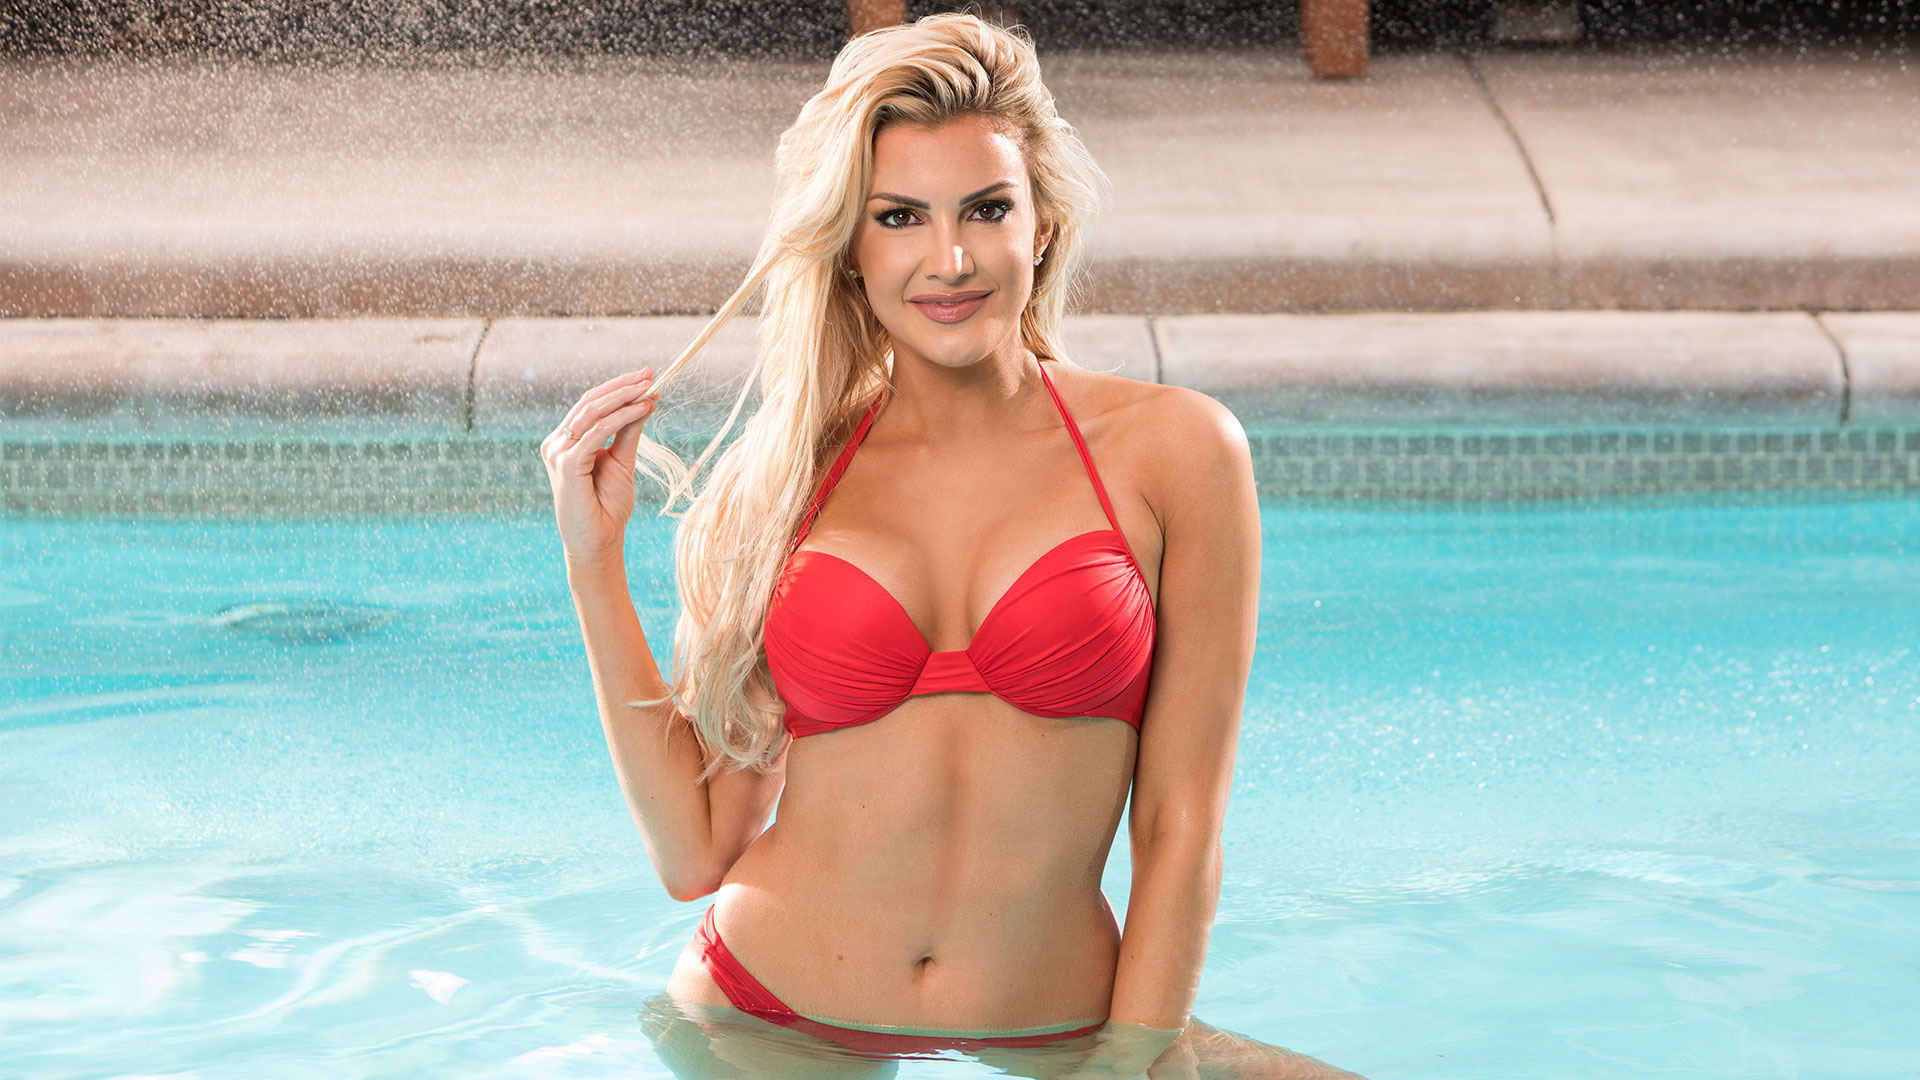 Kathryn Dunn looks to make waves in and out of the pool in her beach-ready swimwear.